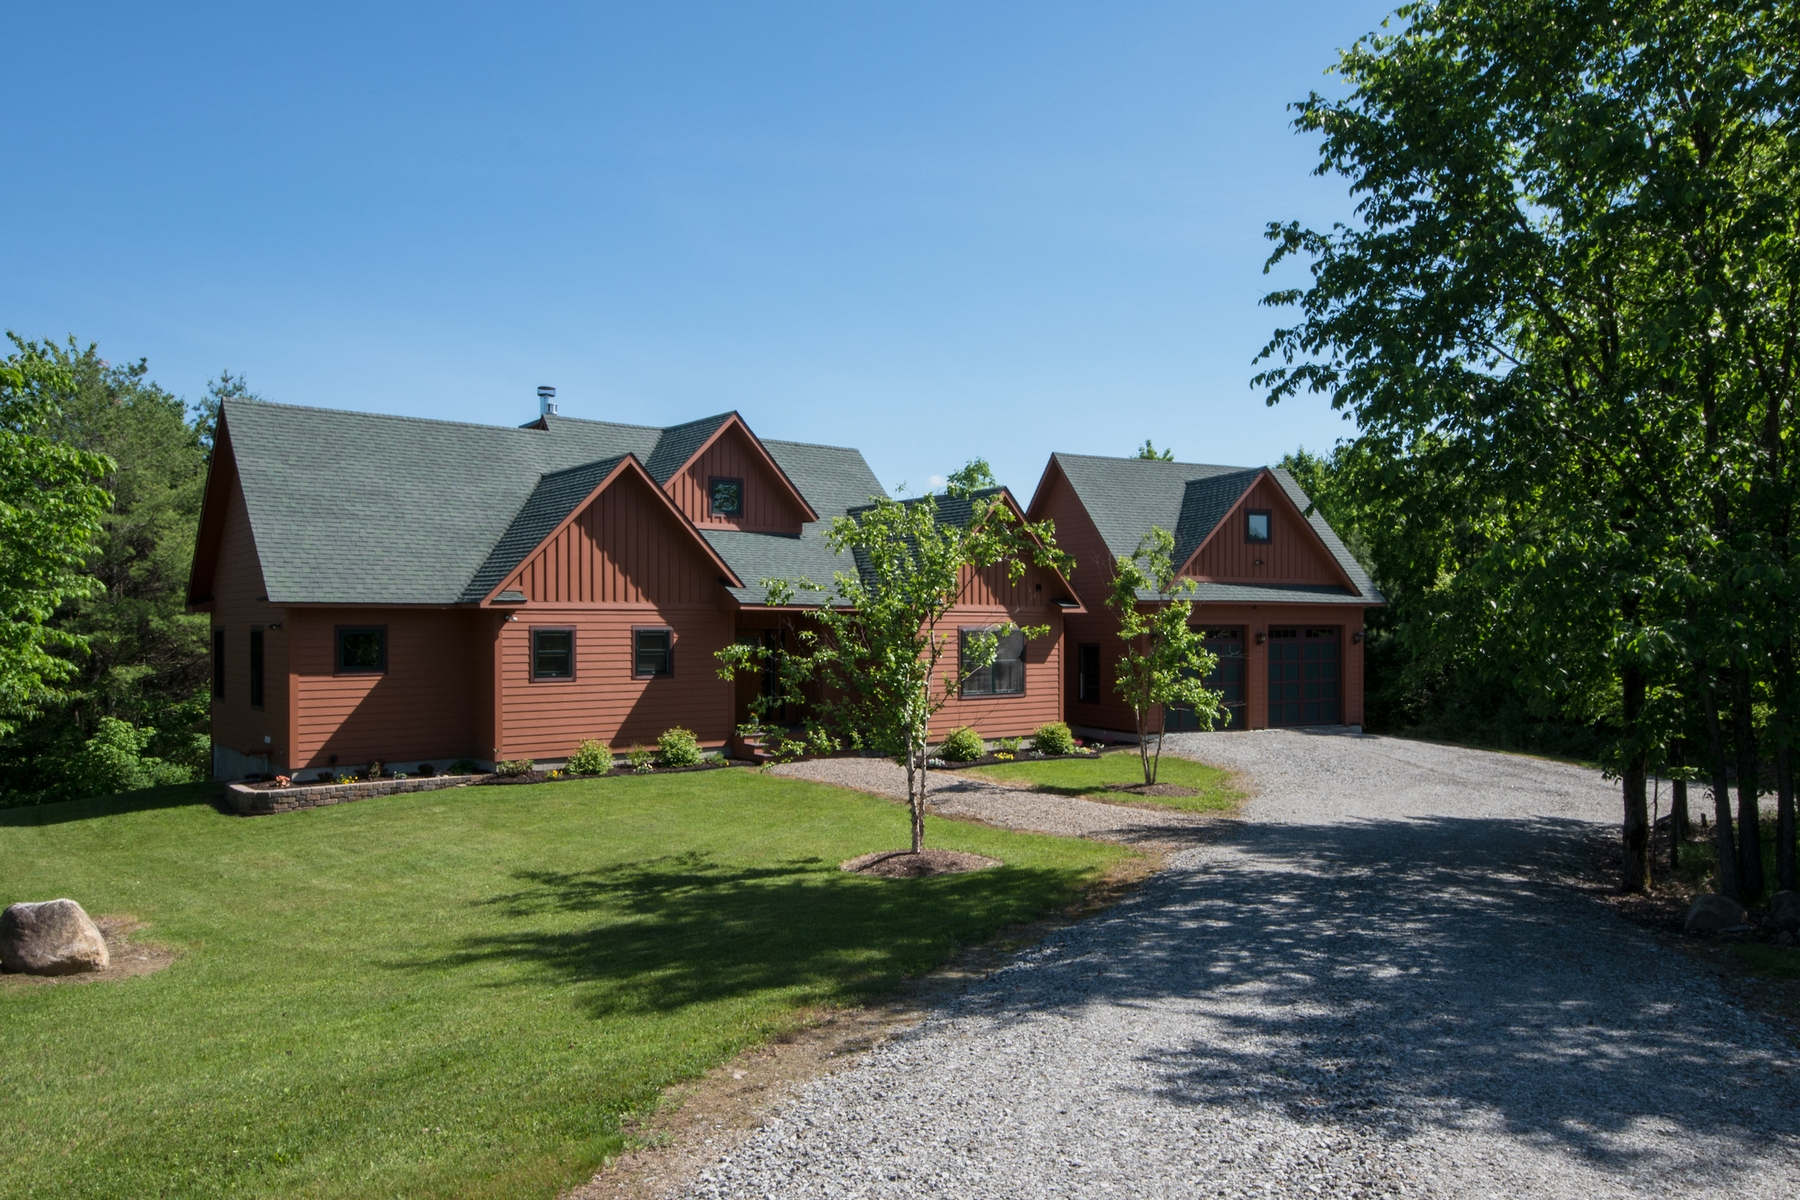 Maison unifamiliale pour l Vente à Custom Adirondack Country Retreat 498 Stickney Bridge Rd Jay, New York 12941 États-Unis